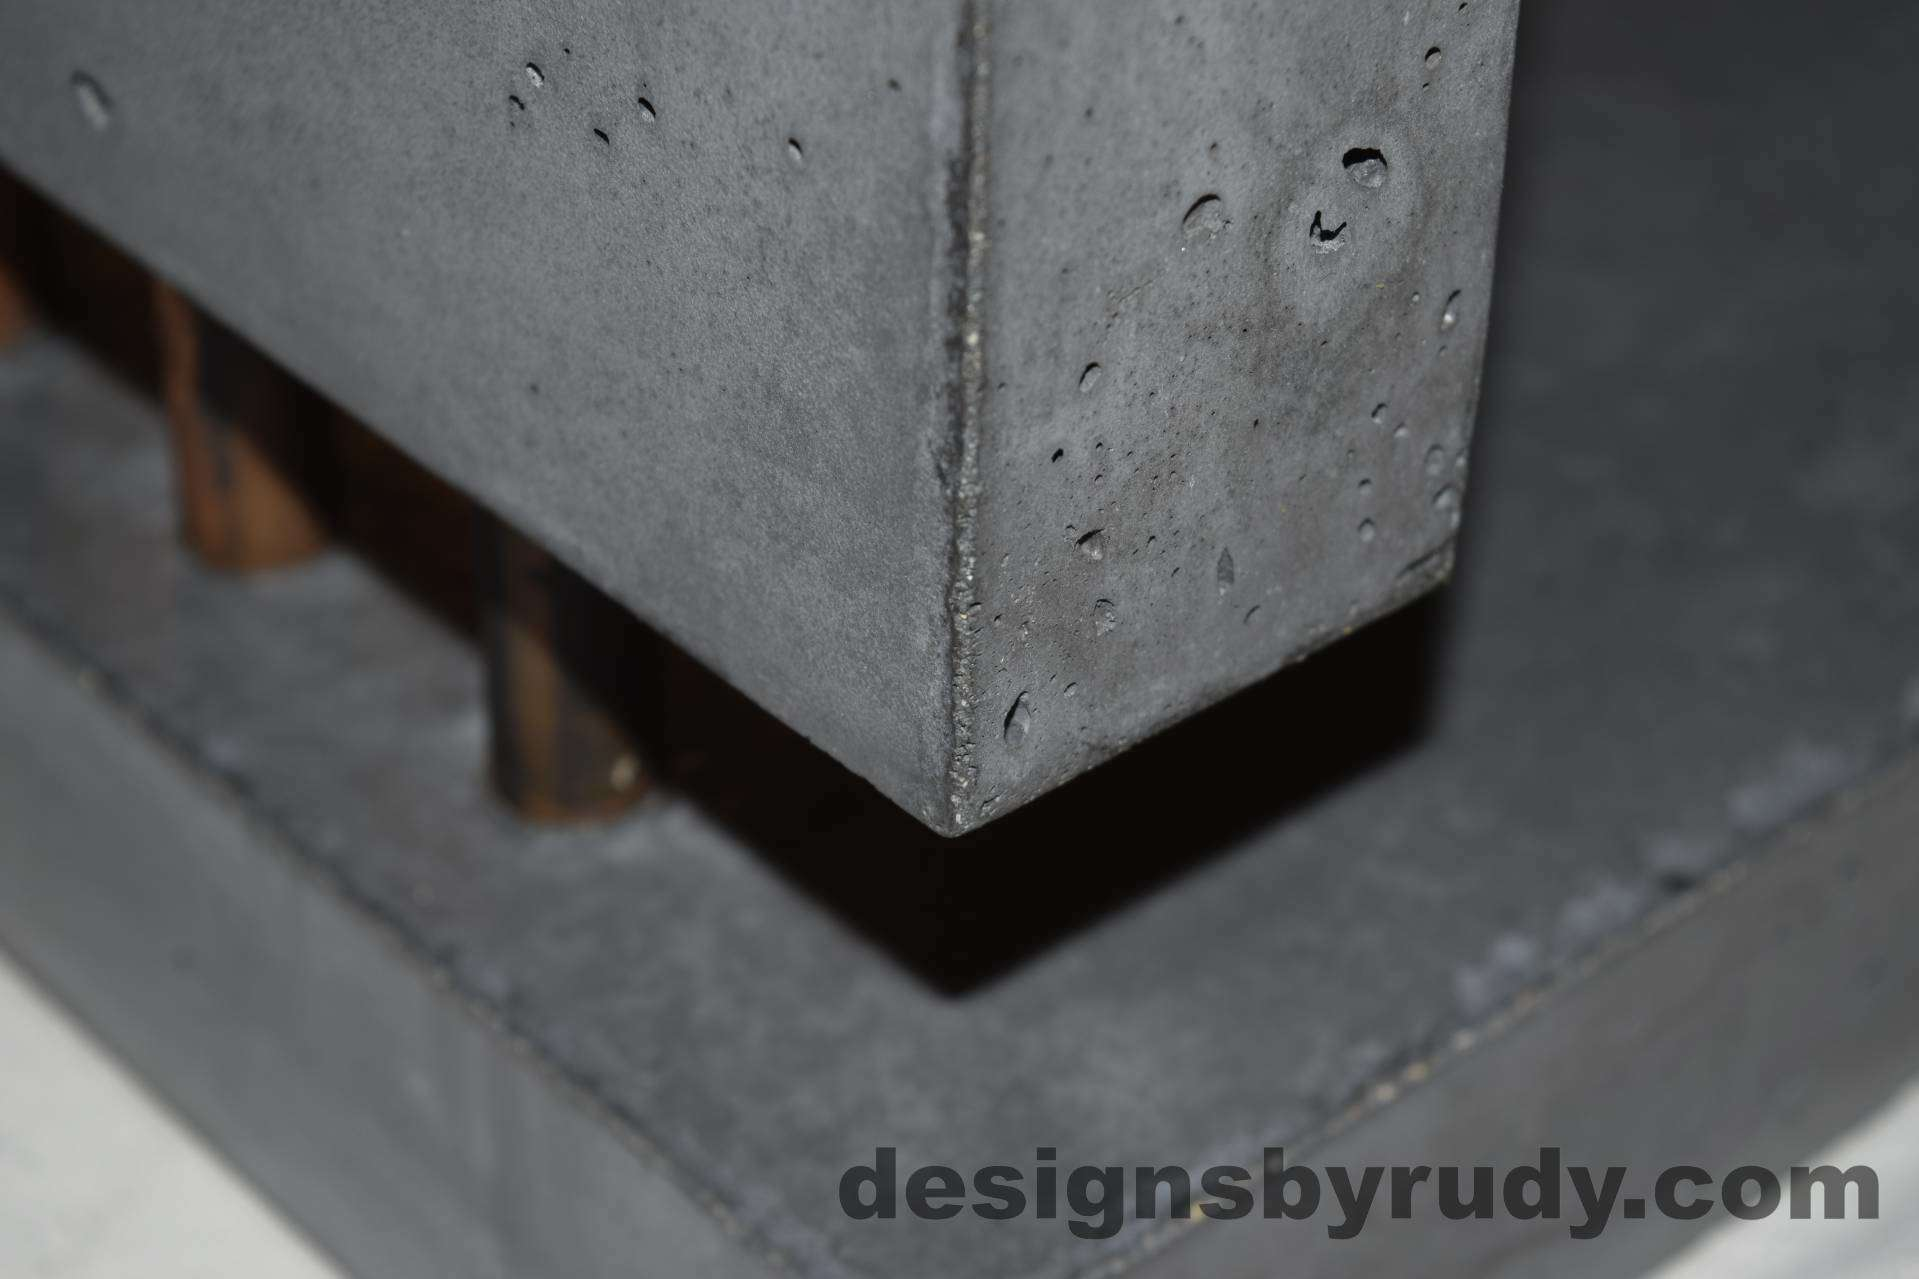 13L Charcoal Concrete Side Table DR0 front bottom corner view closeup 2 with flash, Designs by Rudy